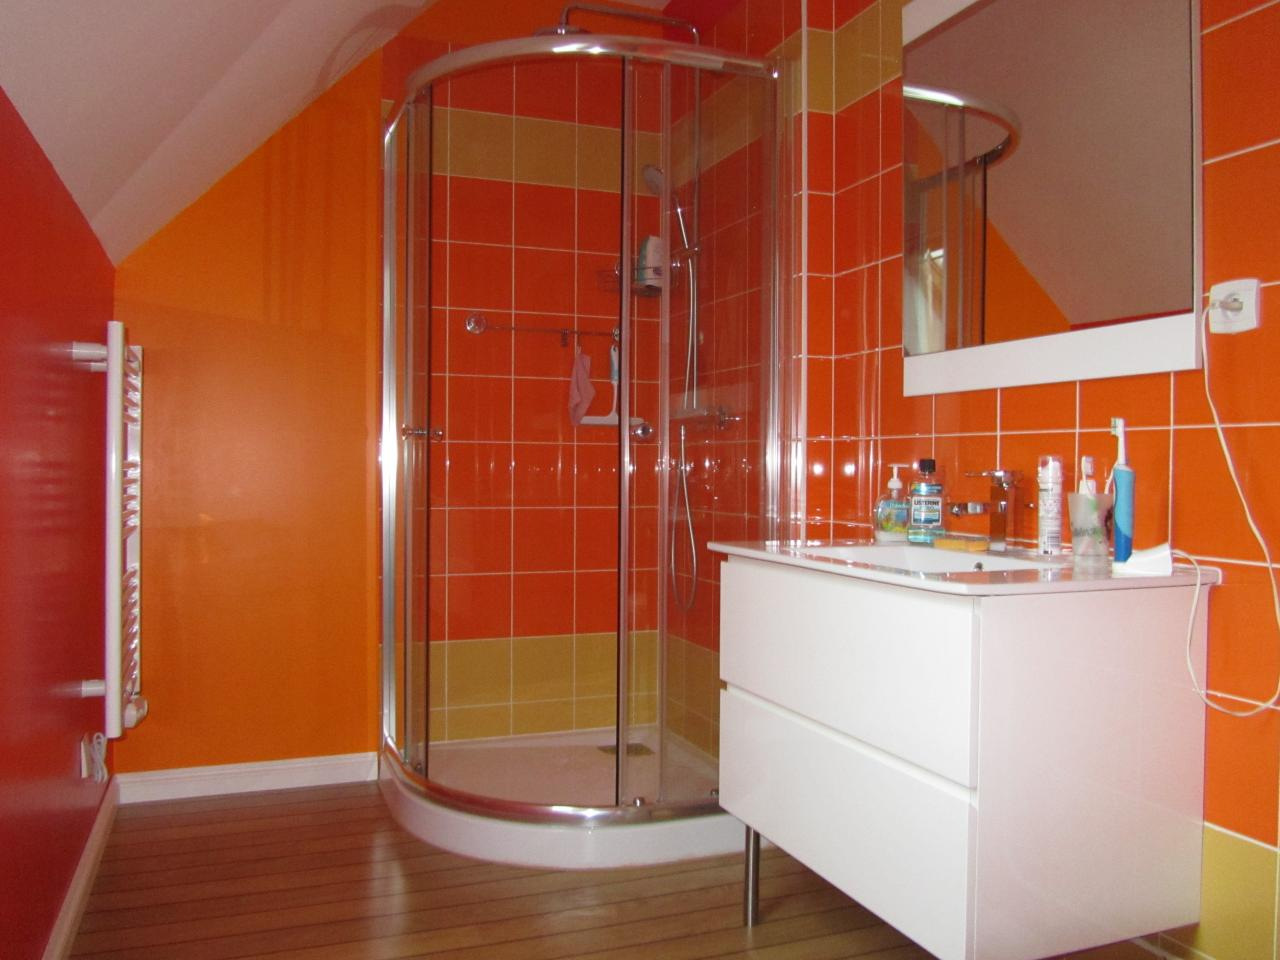 Une salle de bain color e bricobistro for Carrelage salle de bain orange